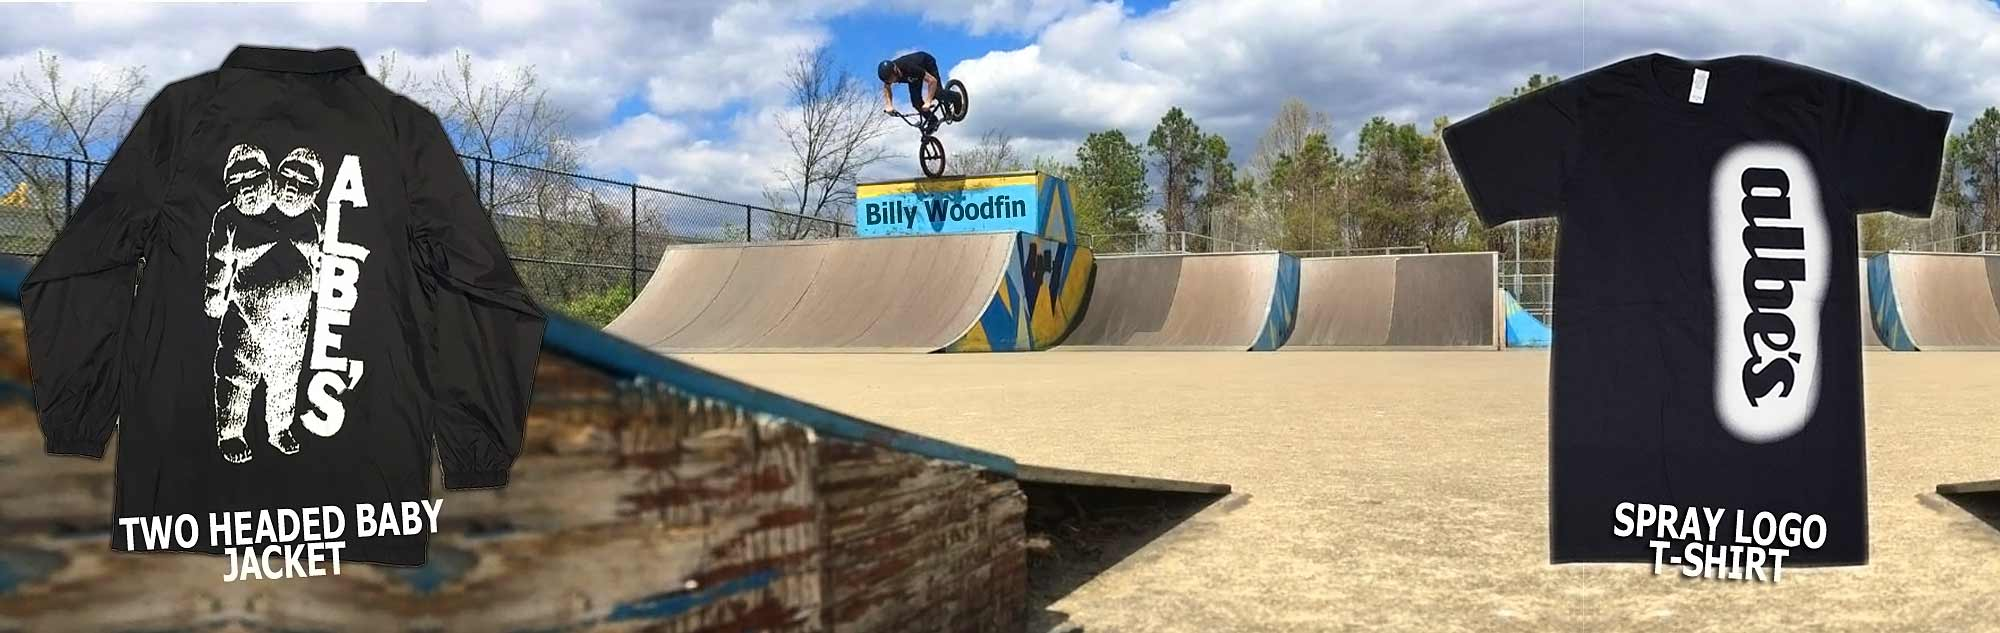 Albe's BMX Clothing at Albe's Online